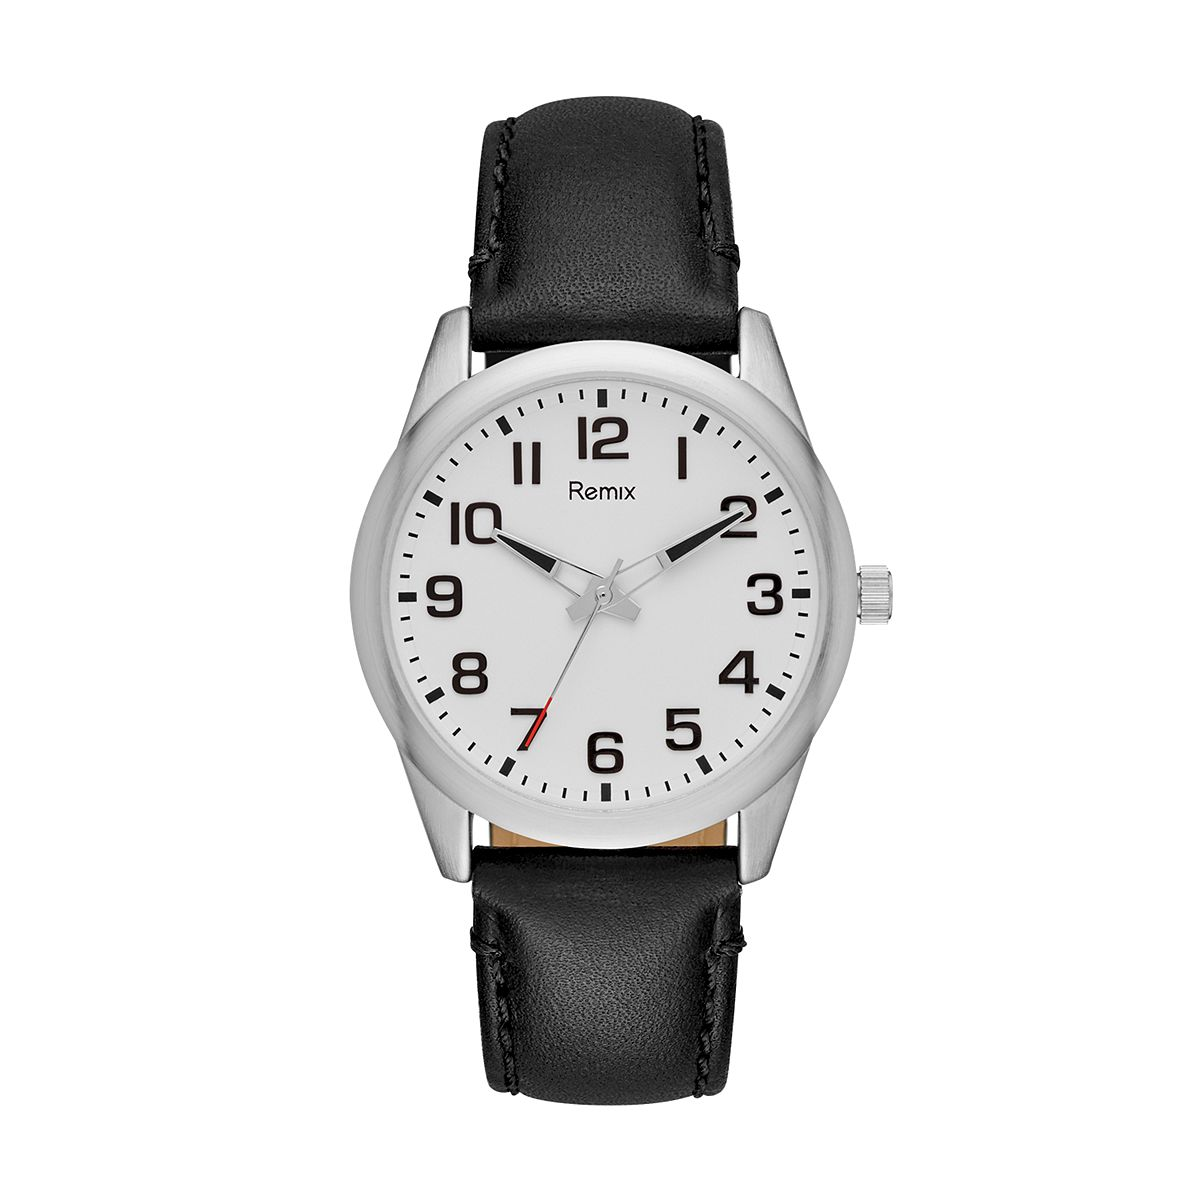 Classic Black PU Leather Watch / Promotional product fully custo